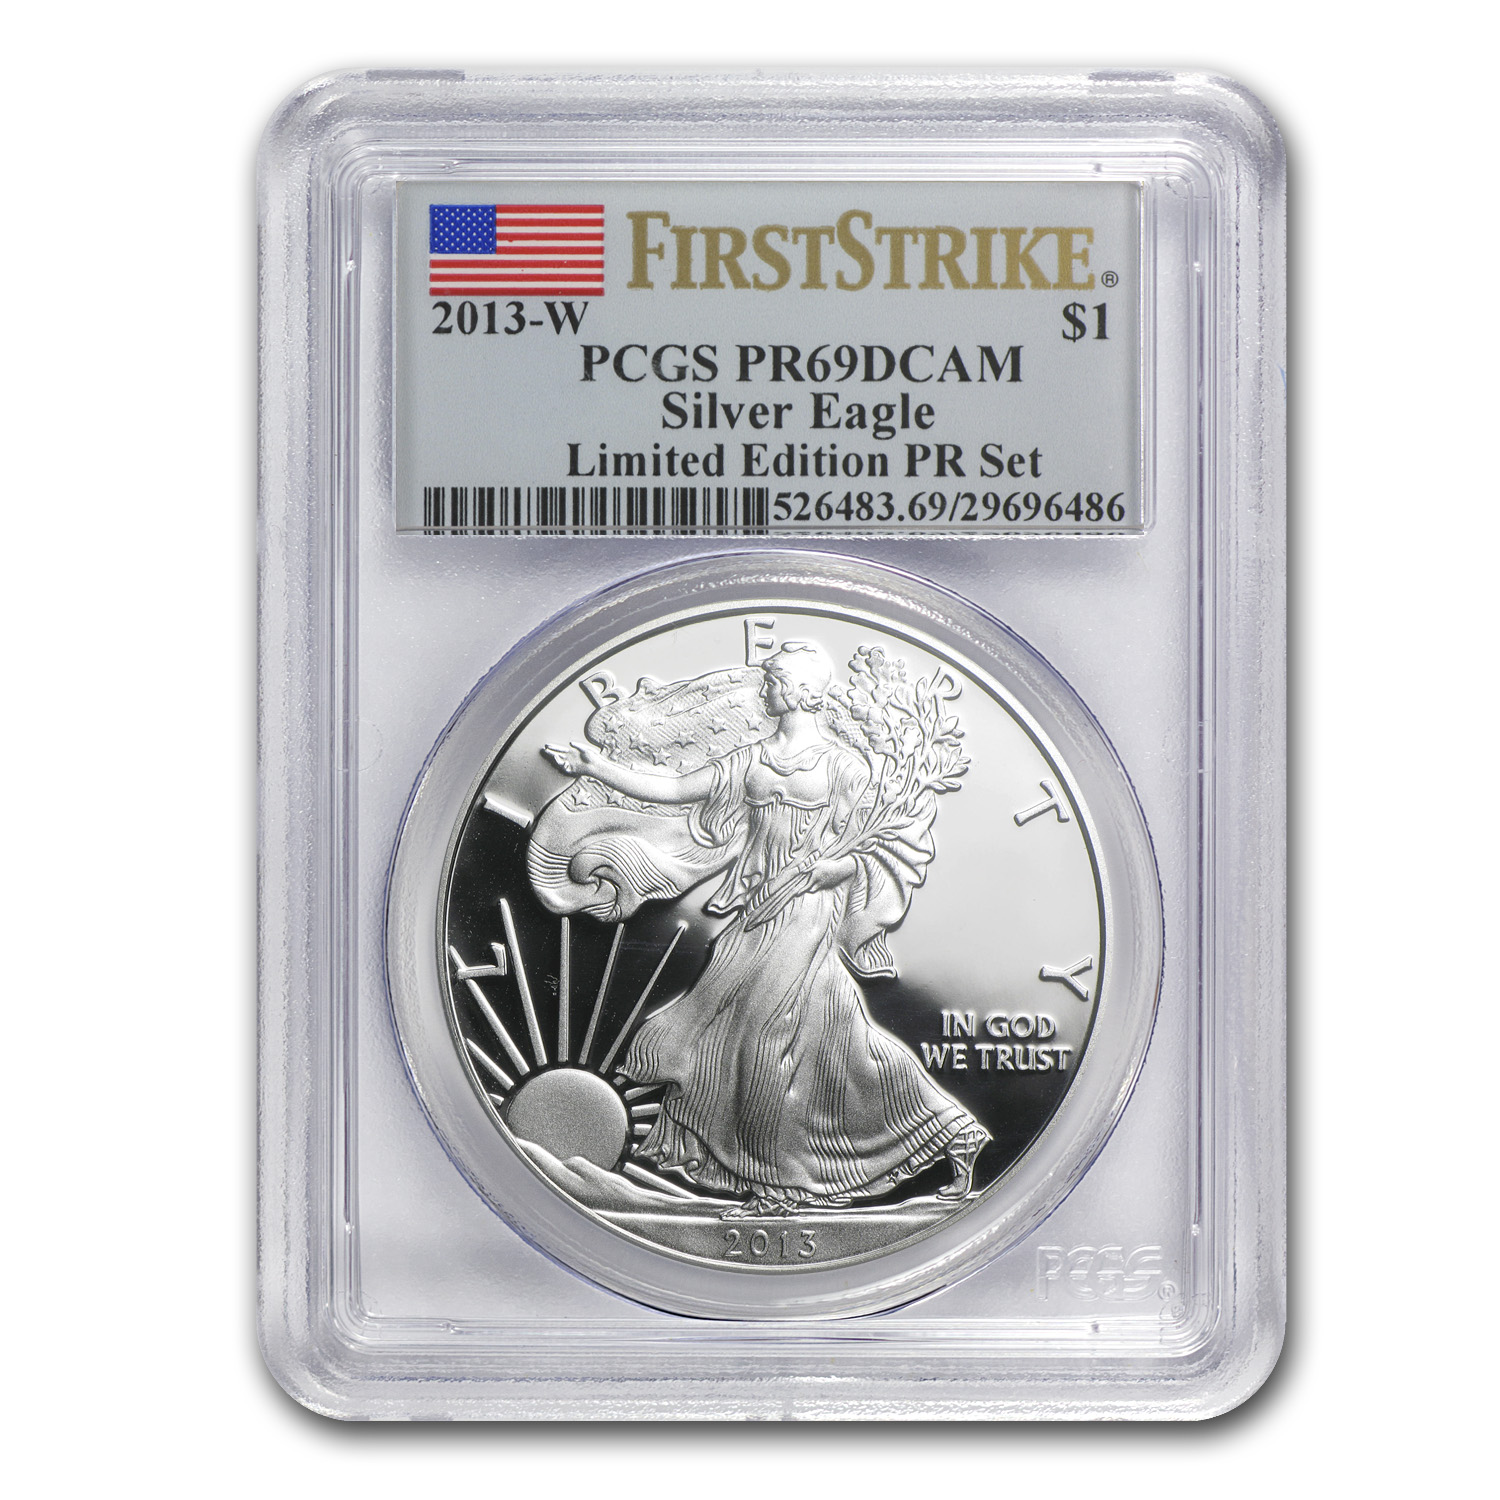 2013-W Proof Silver Eagle PR-69 PCGS (FS, Limited Edition)